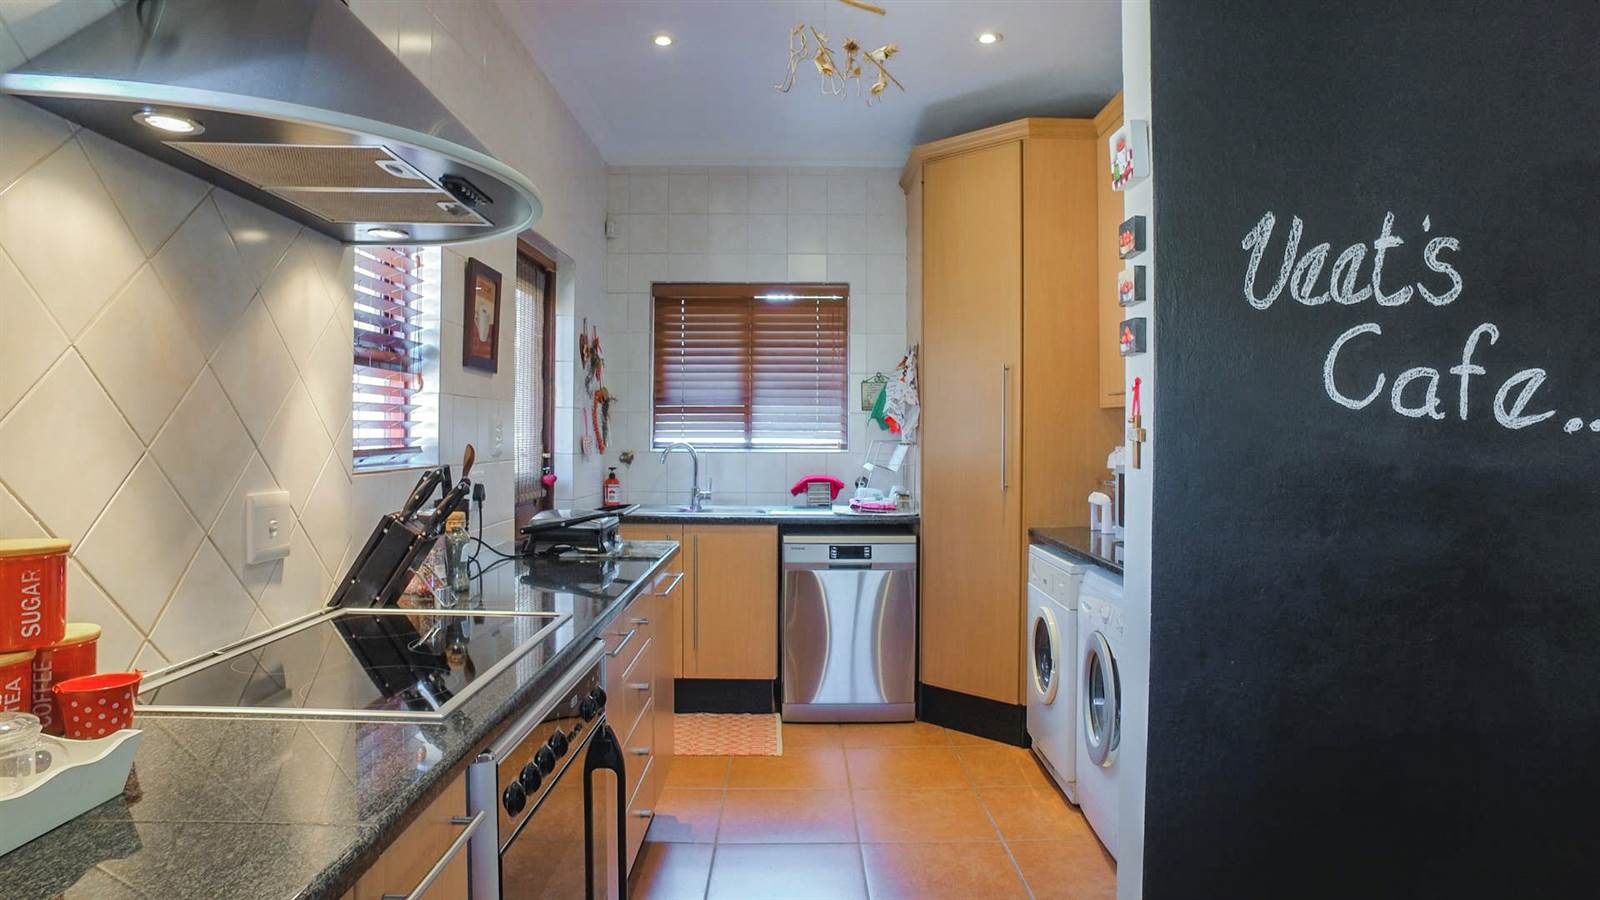 4 Bedroom Townhouse for sale in Mulbarton ENT0067436 : photo#12